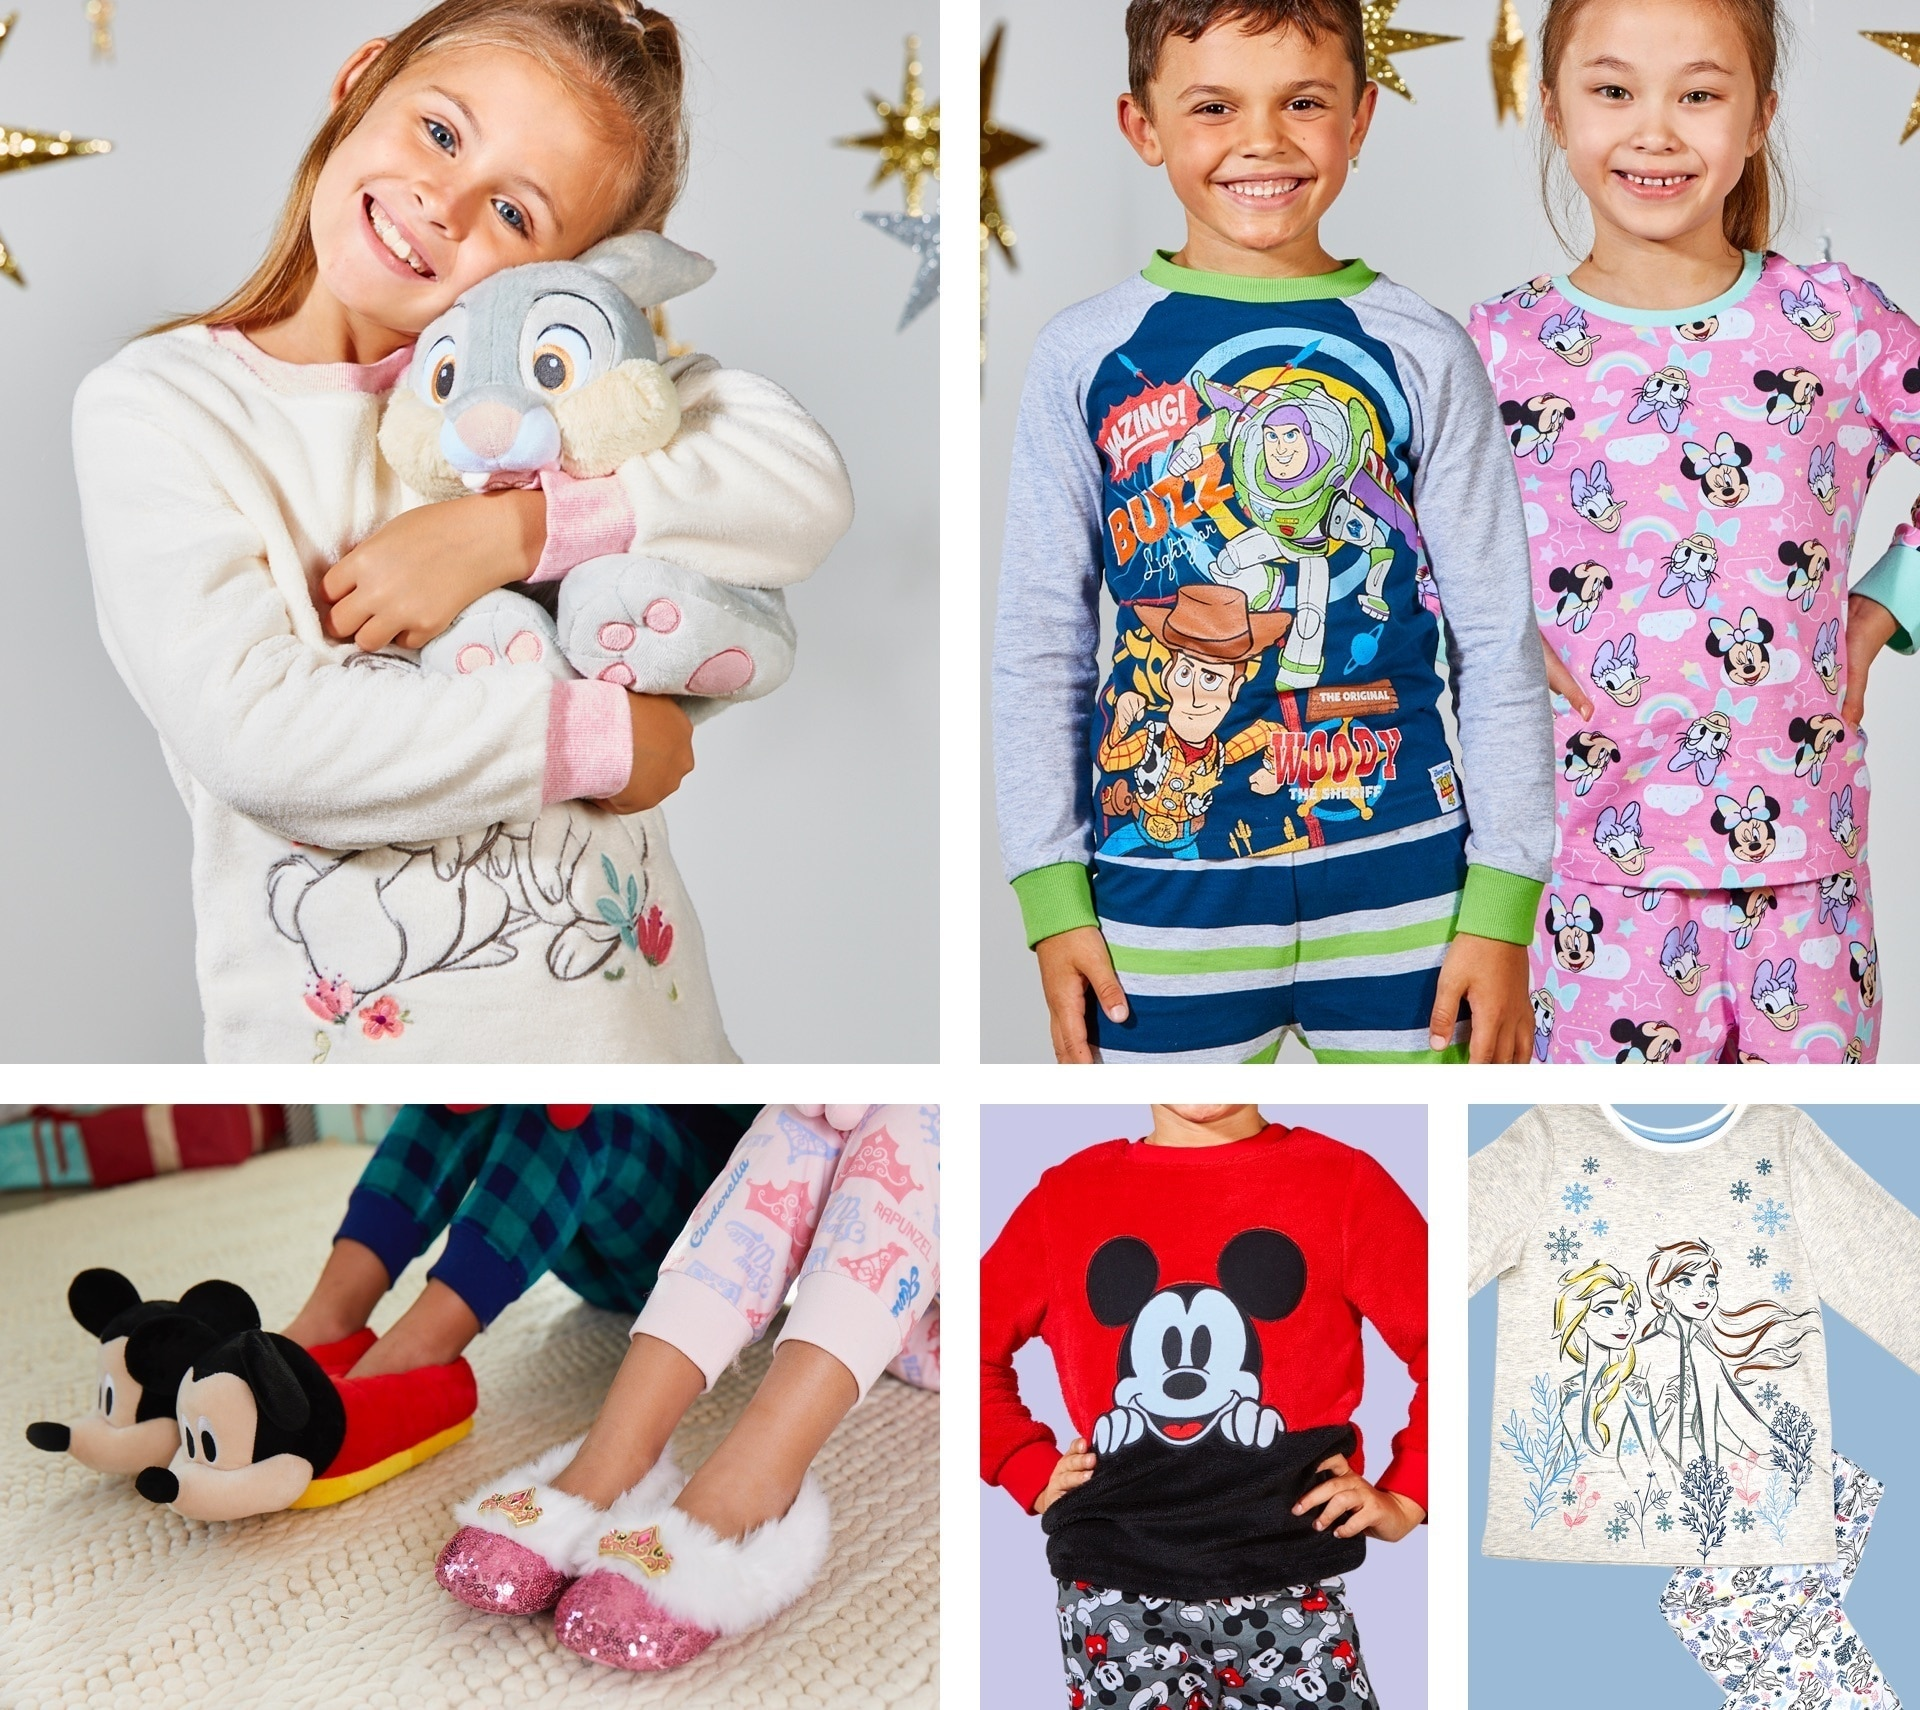 A selection of children wearing Disney pyjamas